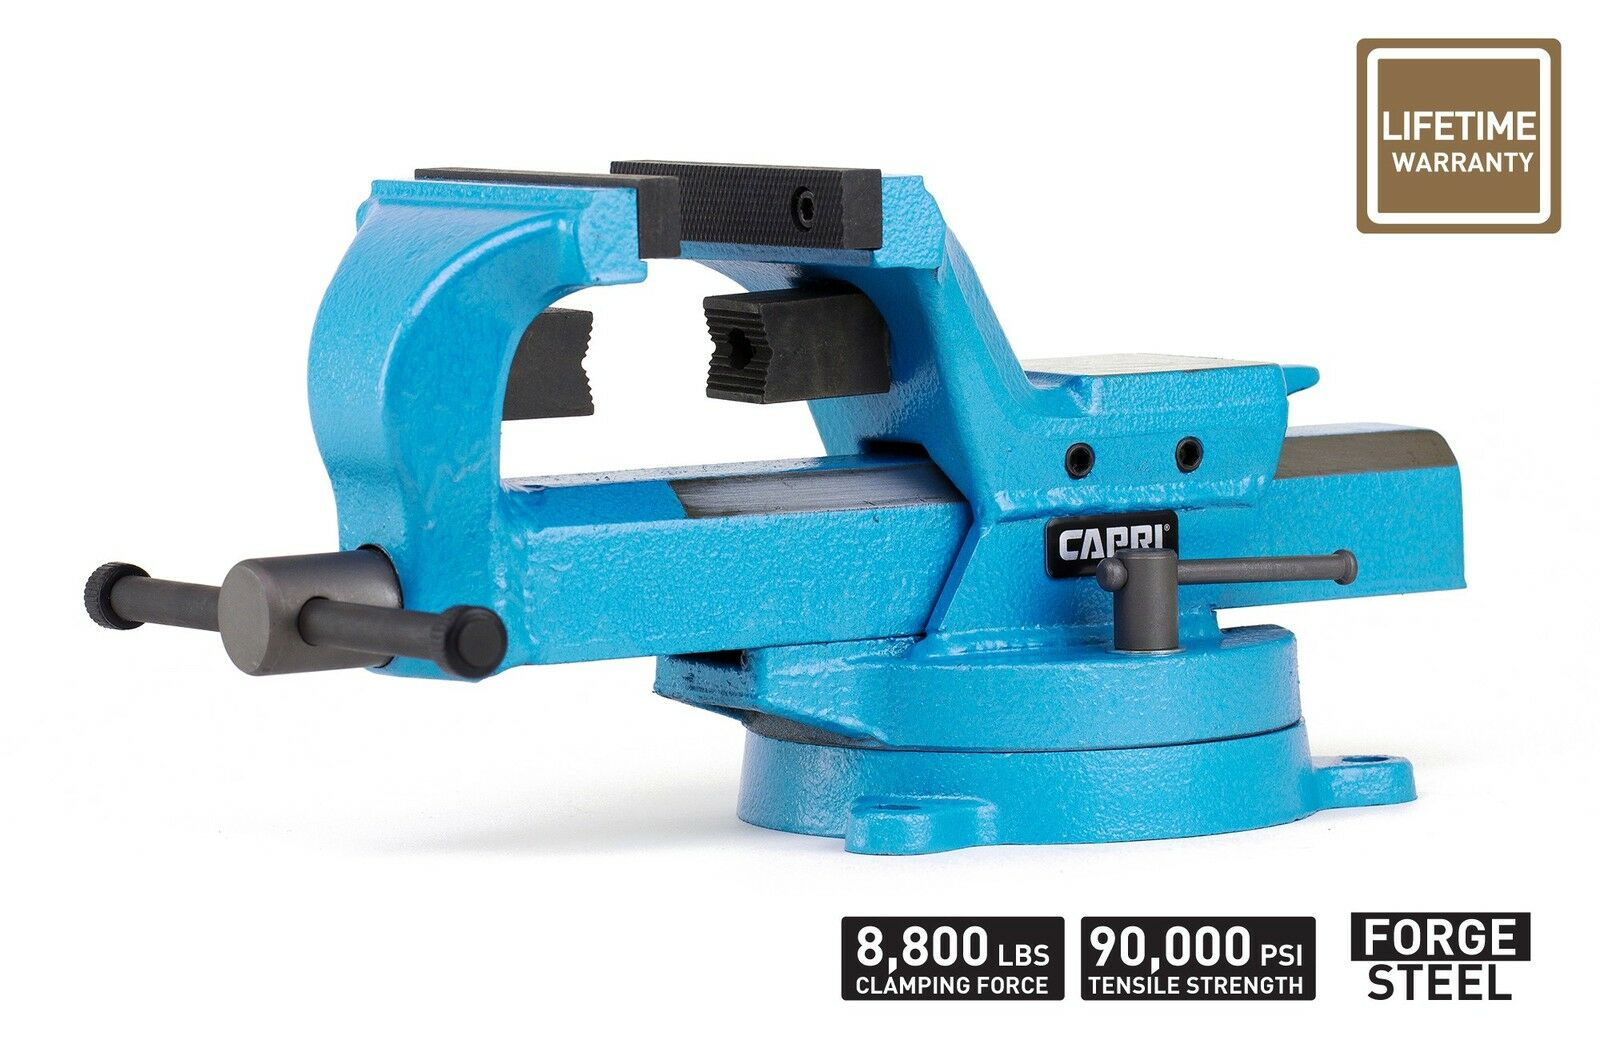 Details About Capri Tools 6 Bench Vise 360 Rotation Forged Steel